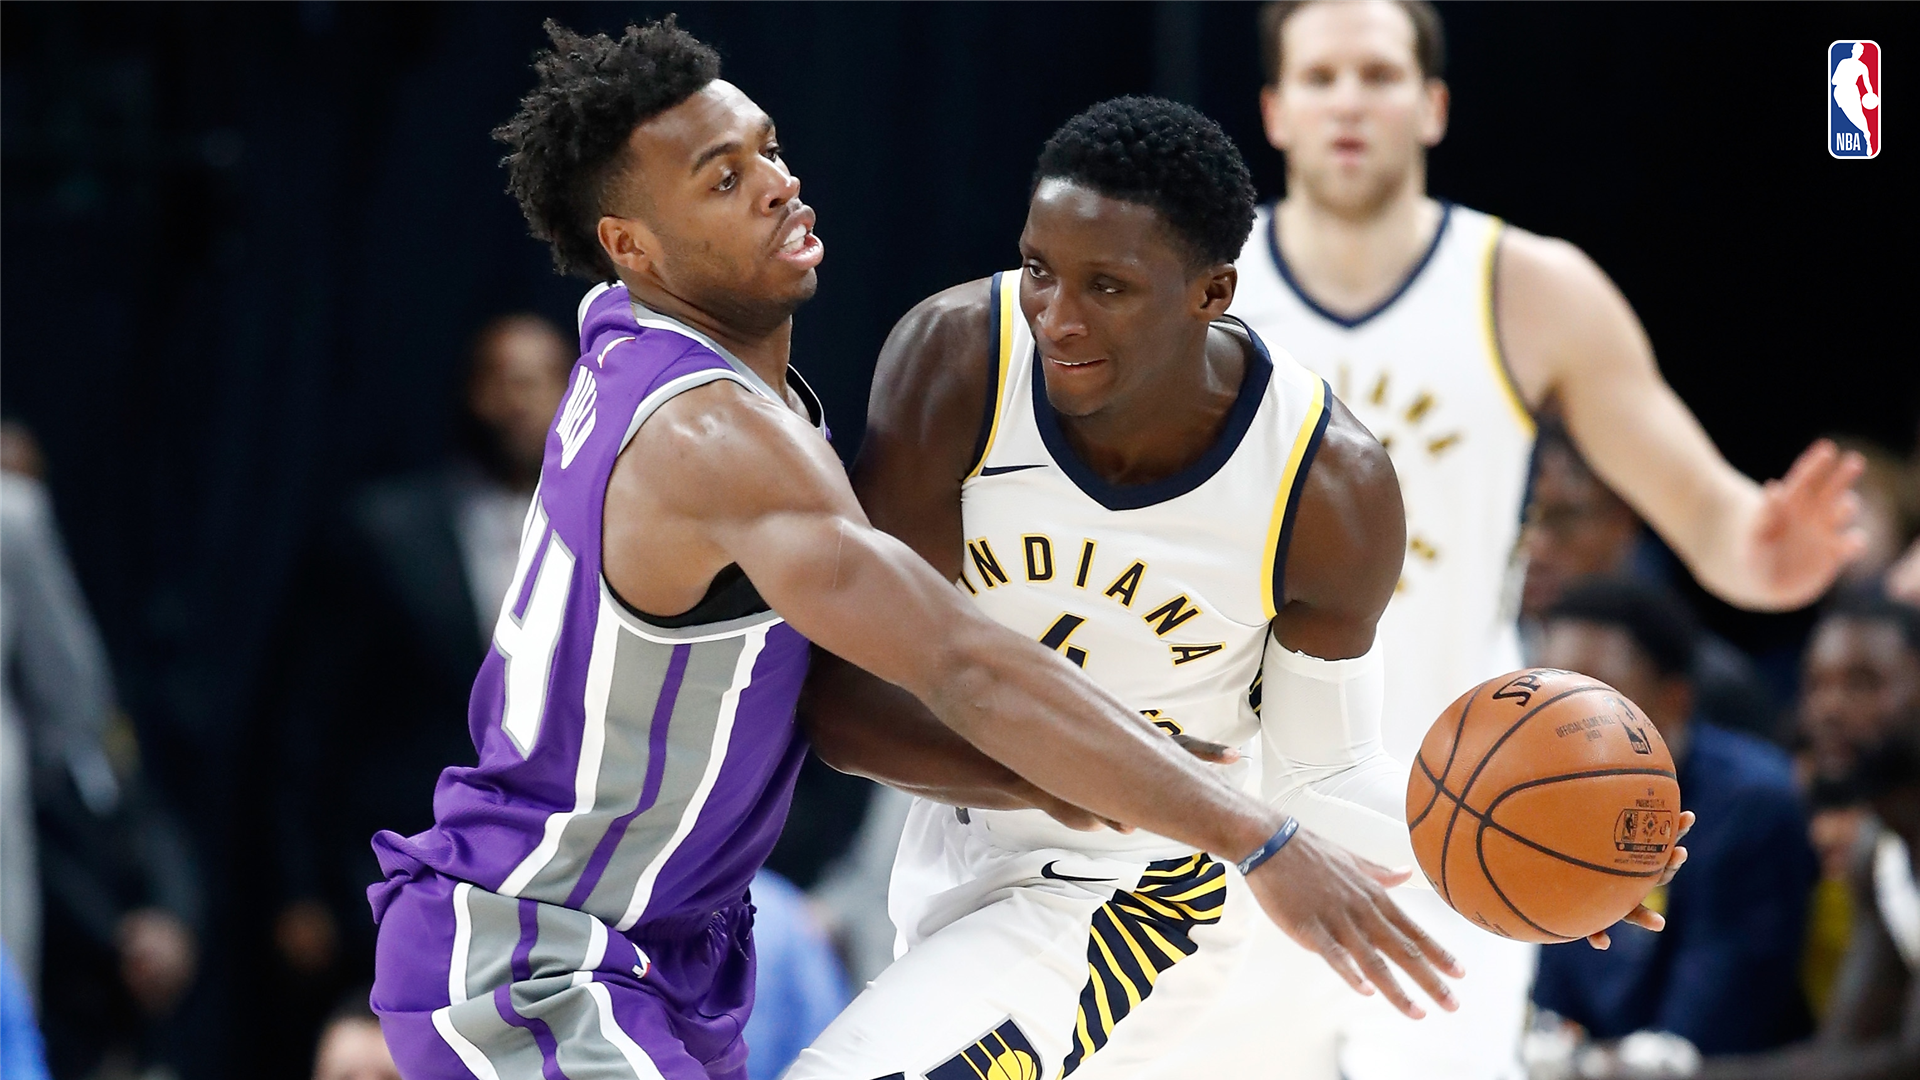 Buddy Hield of the Sacramento Kings and Victor Oladipo of the Indiana Pacers